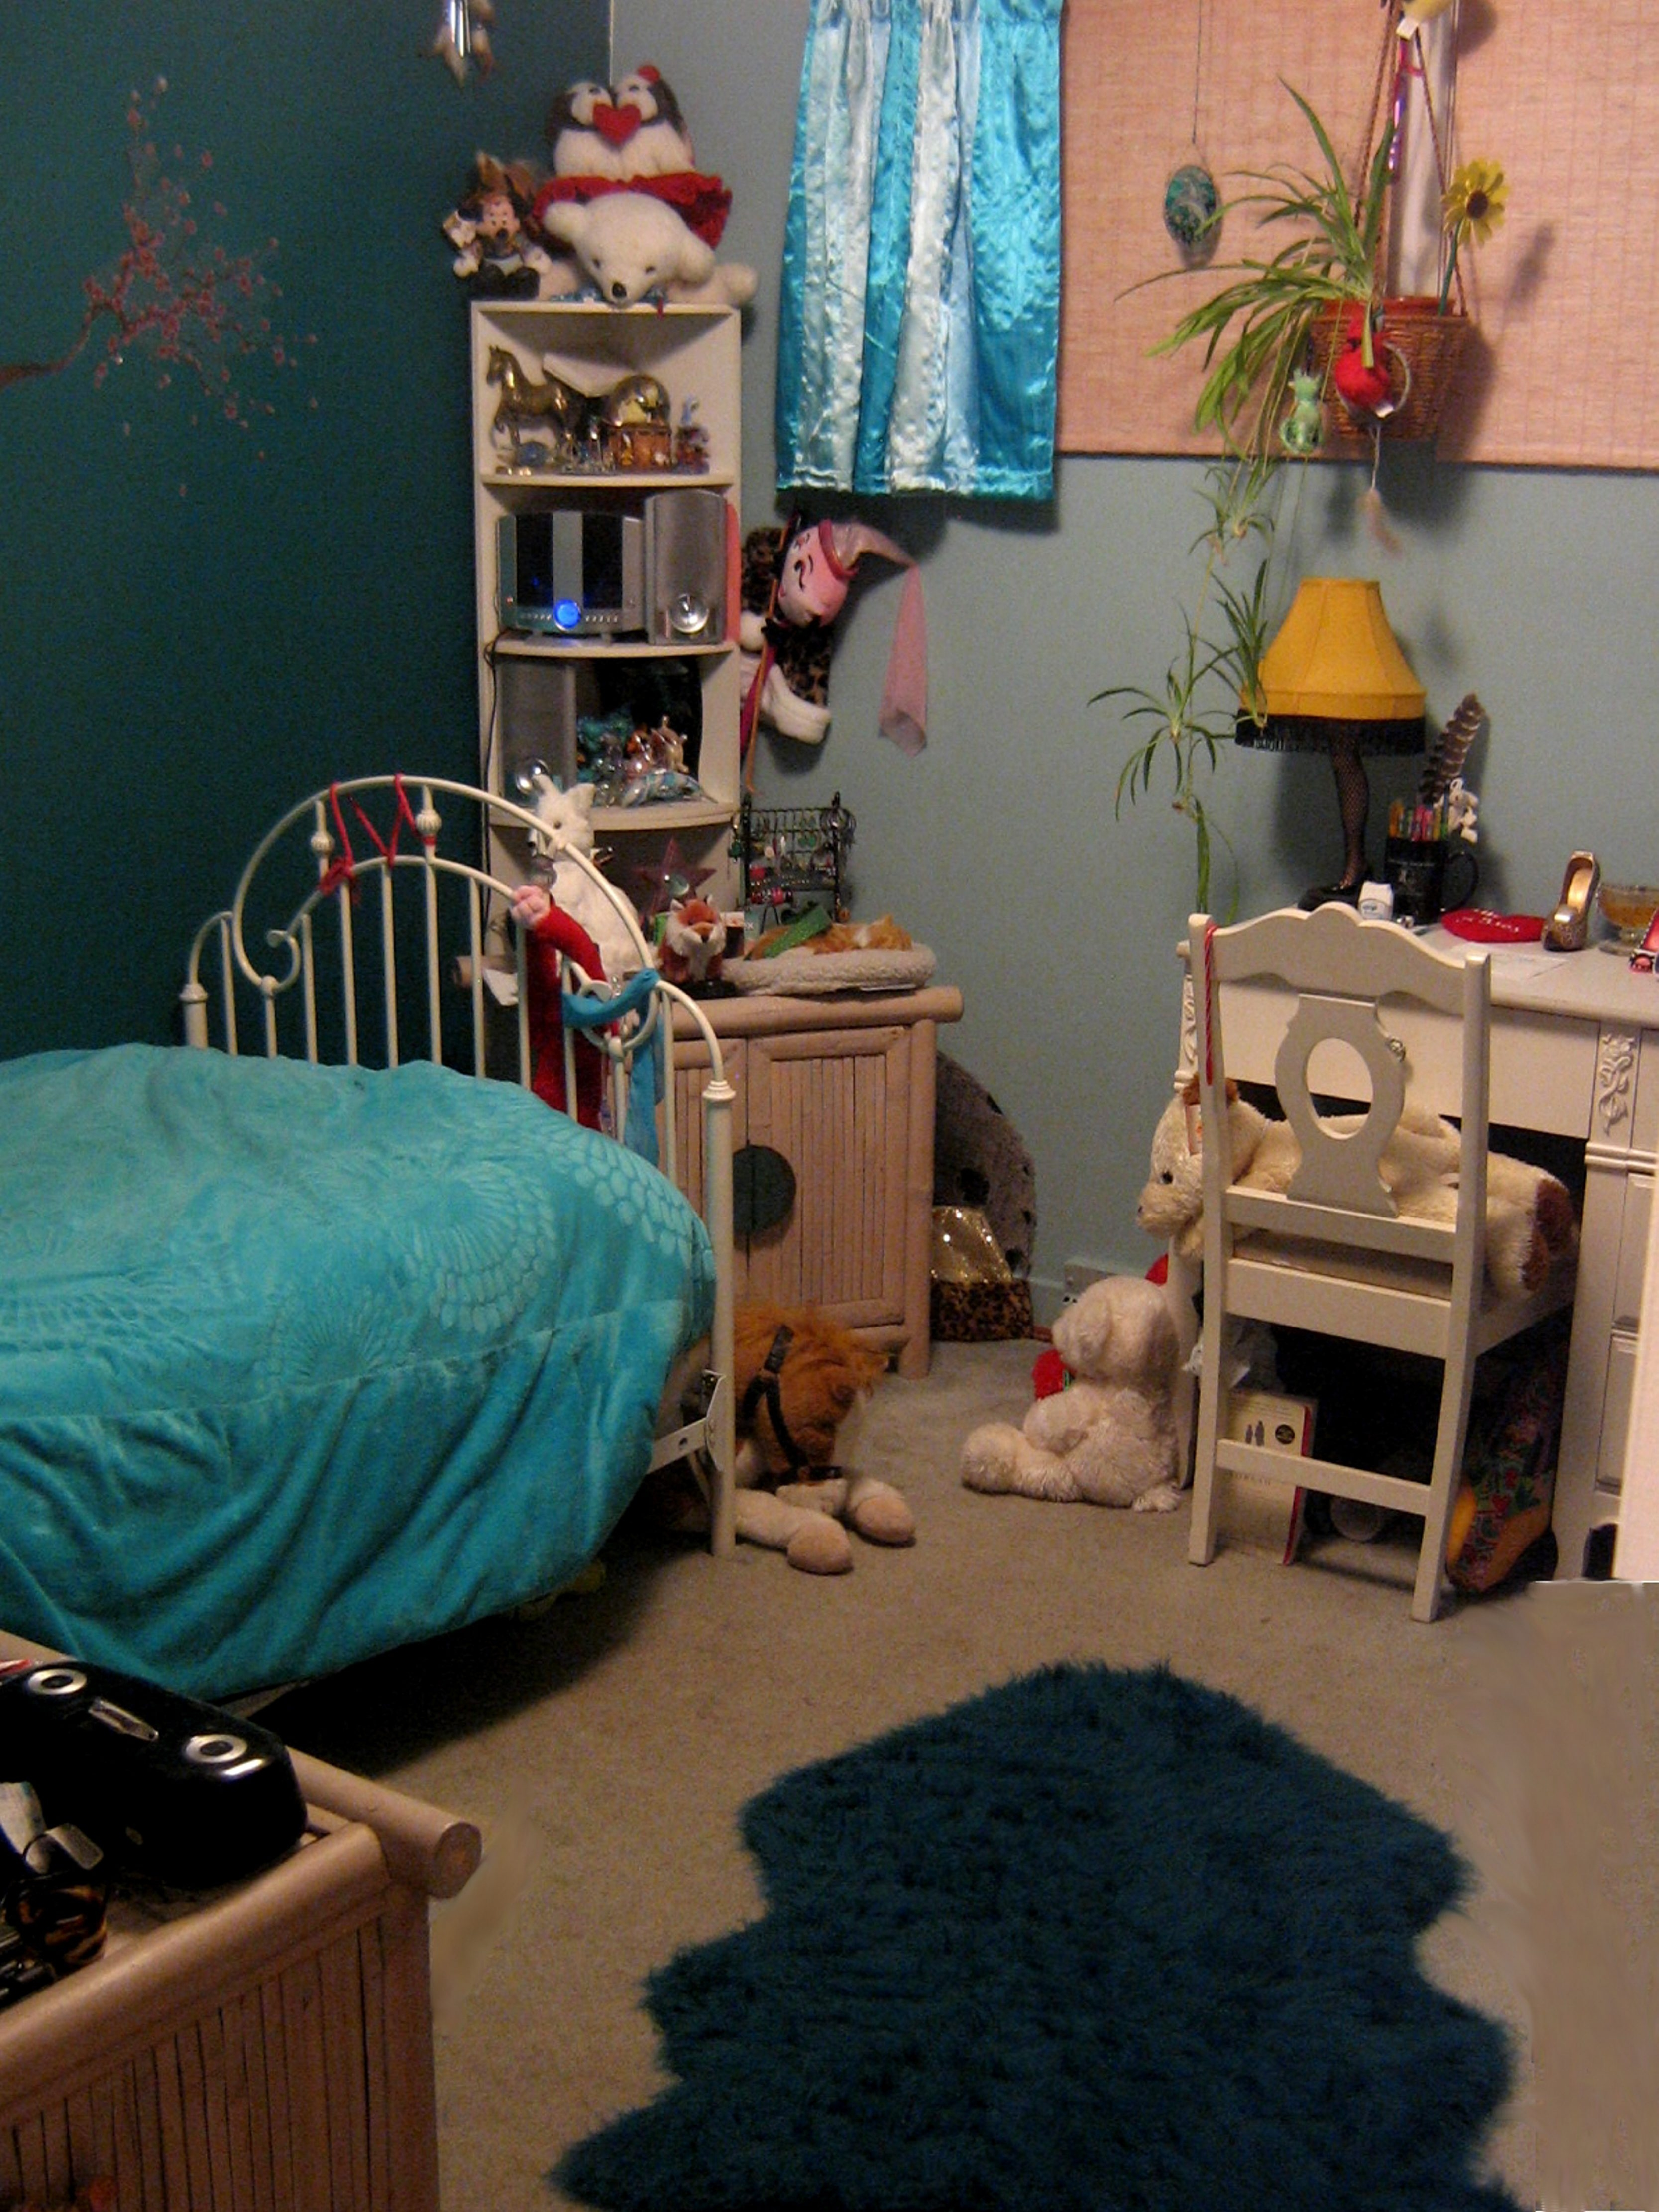 Molly Teti, a senior at Sweet Home High School, chose trendy green and blue hues for her new room.